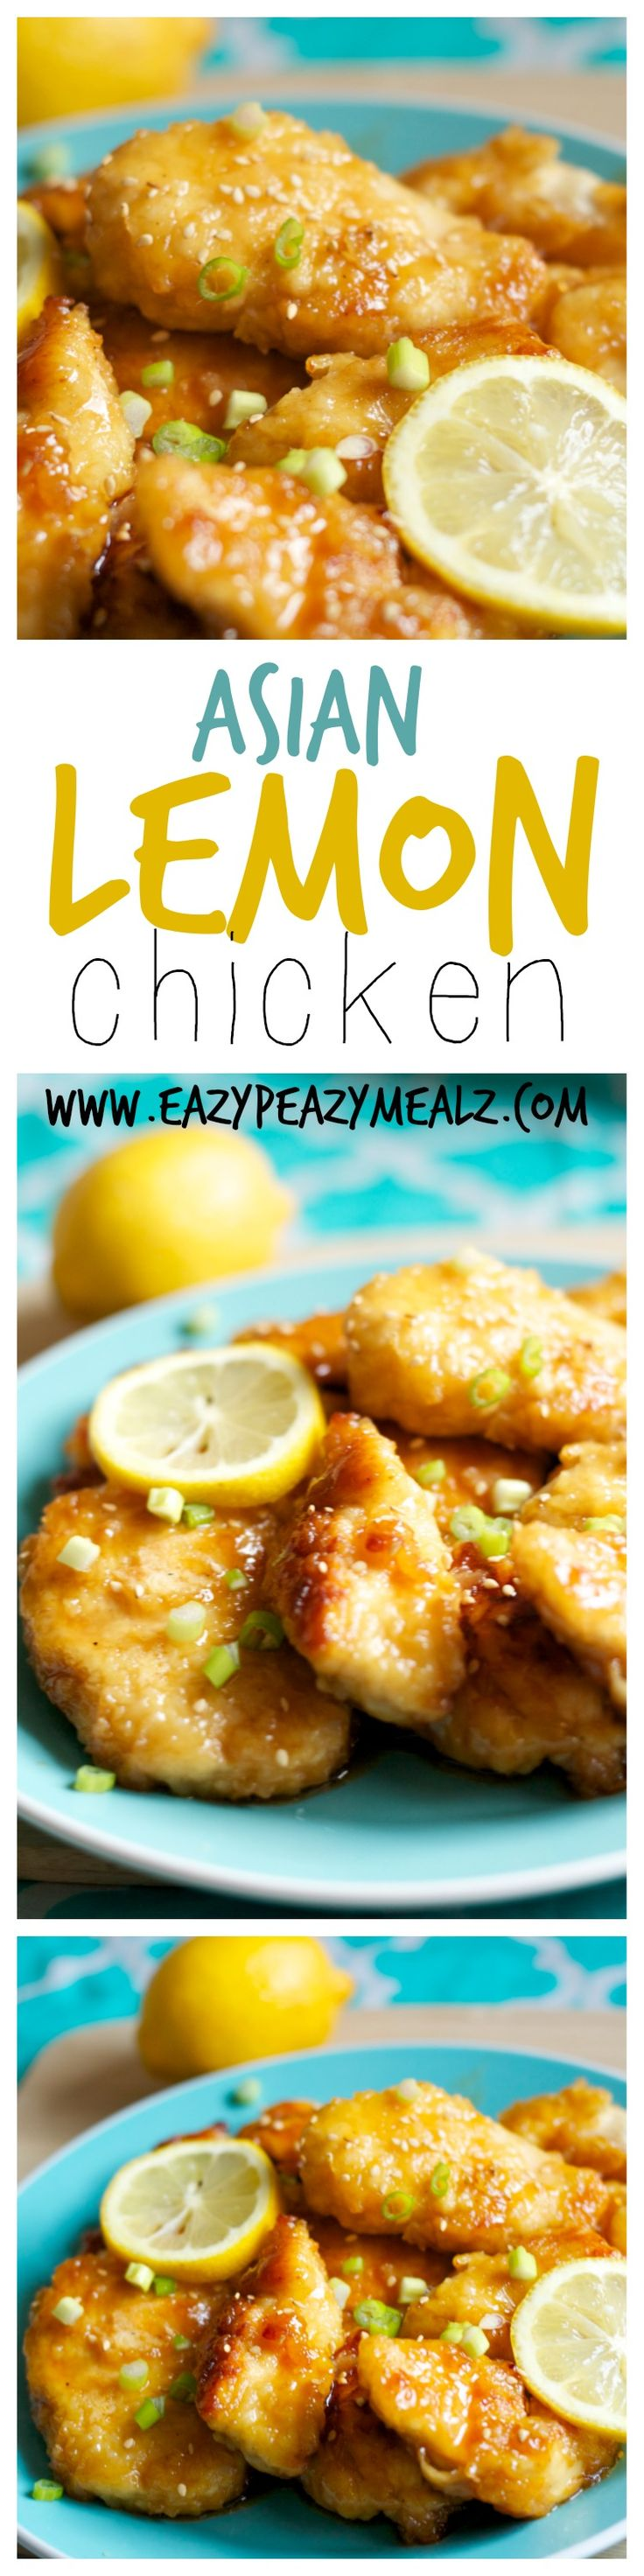 Asian Lemon Chicken : This will become a staple in your dinner rotation. So much flavor, and way better than take-out! | Eazy Peazy Mealz